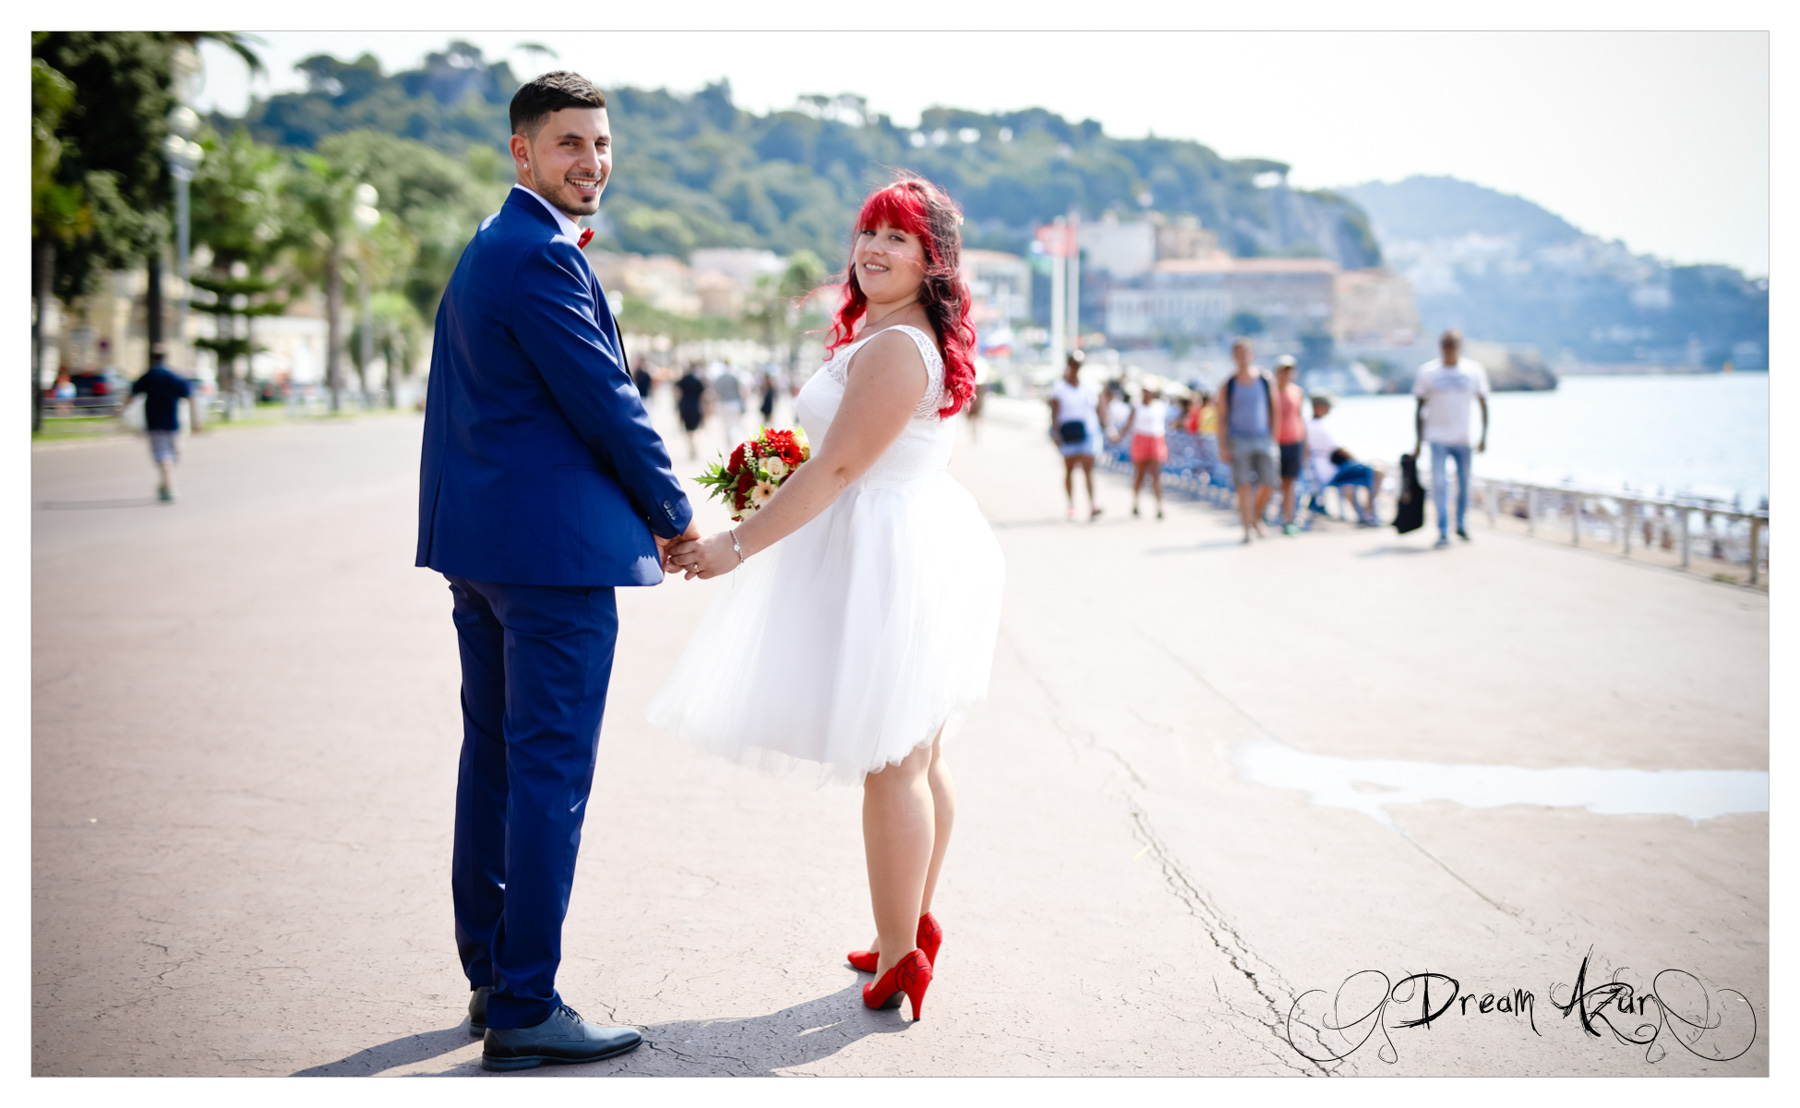 190824COMPO-Mariage-Cindy-et-Anthony-17